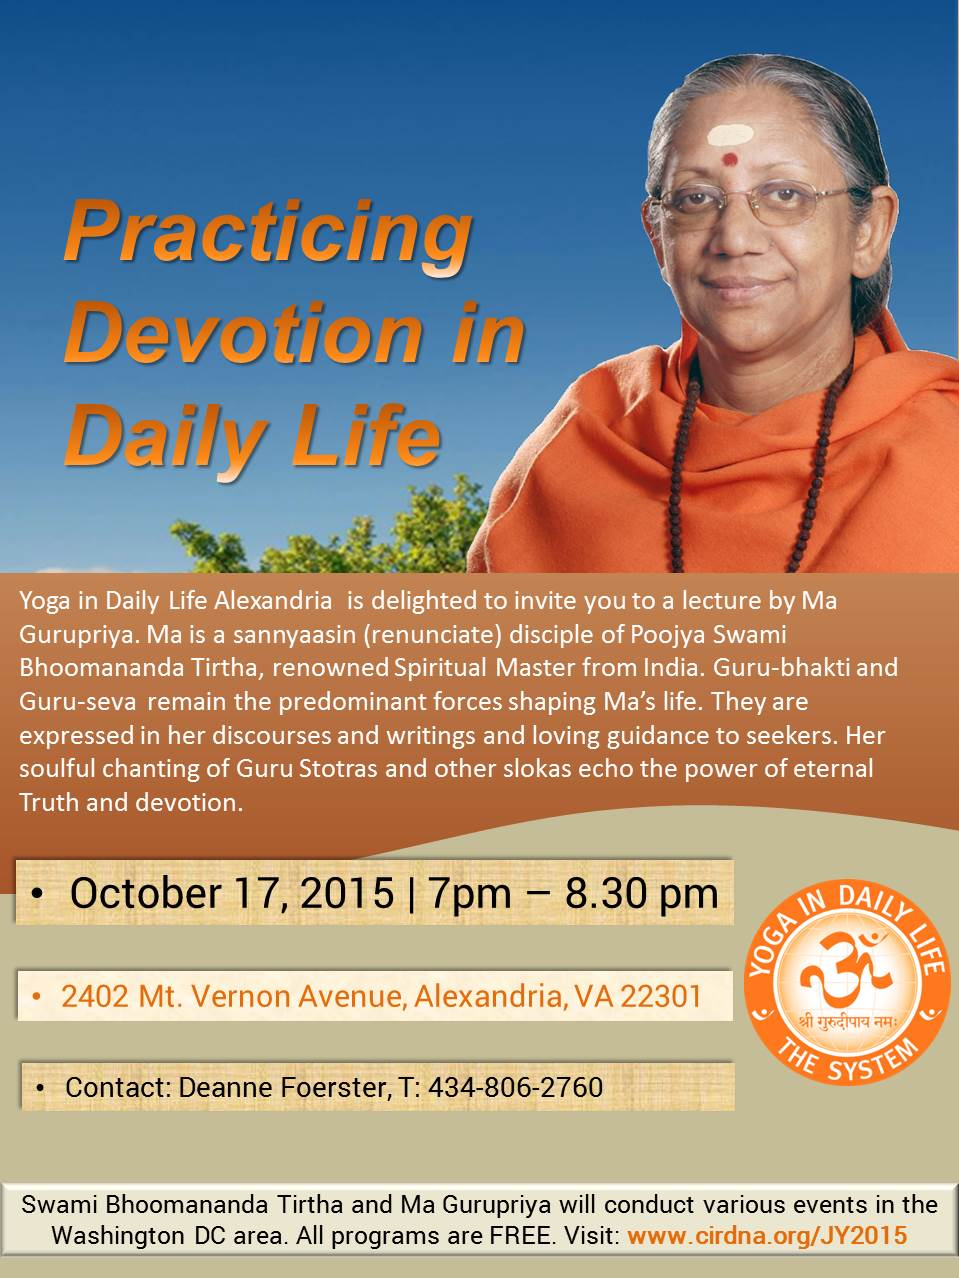 Practicing Devotion in Daily Life